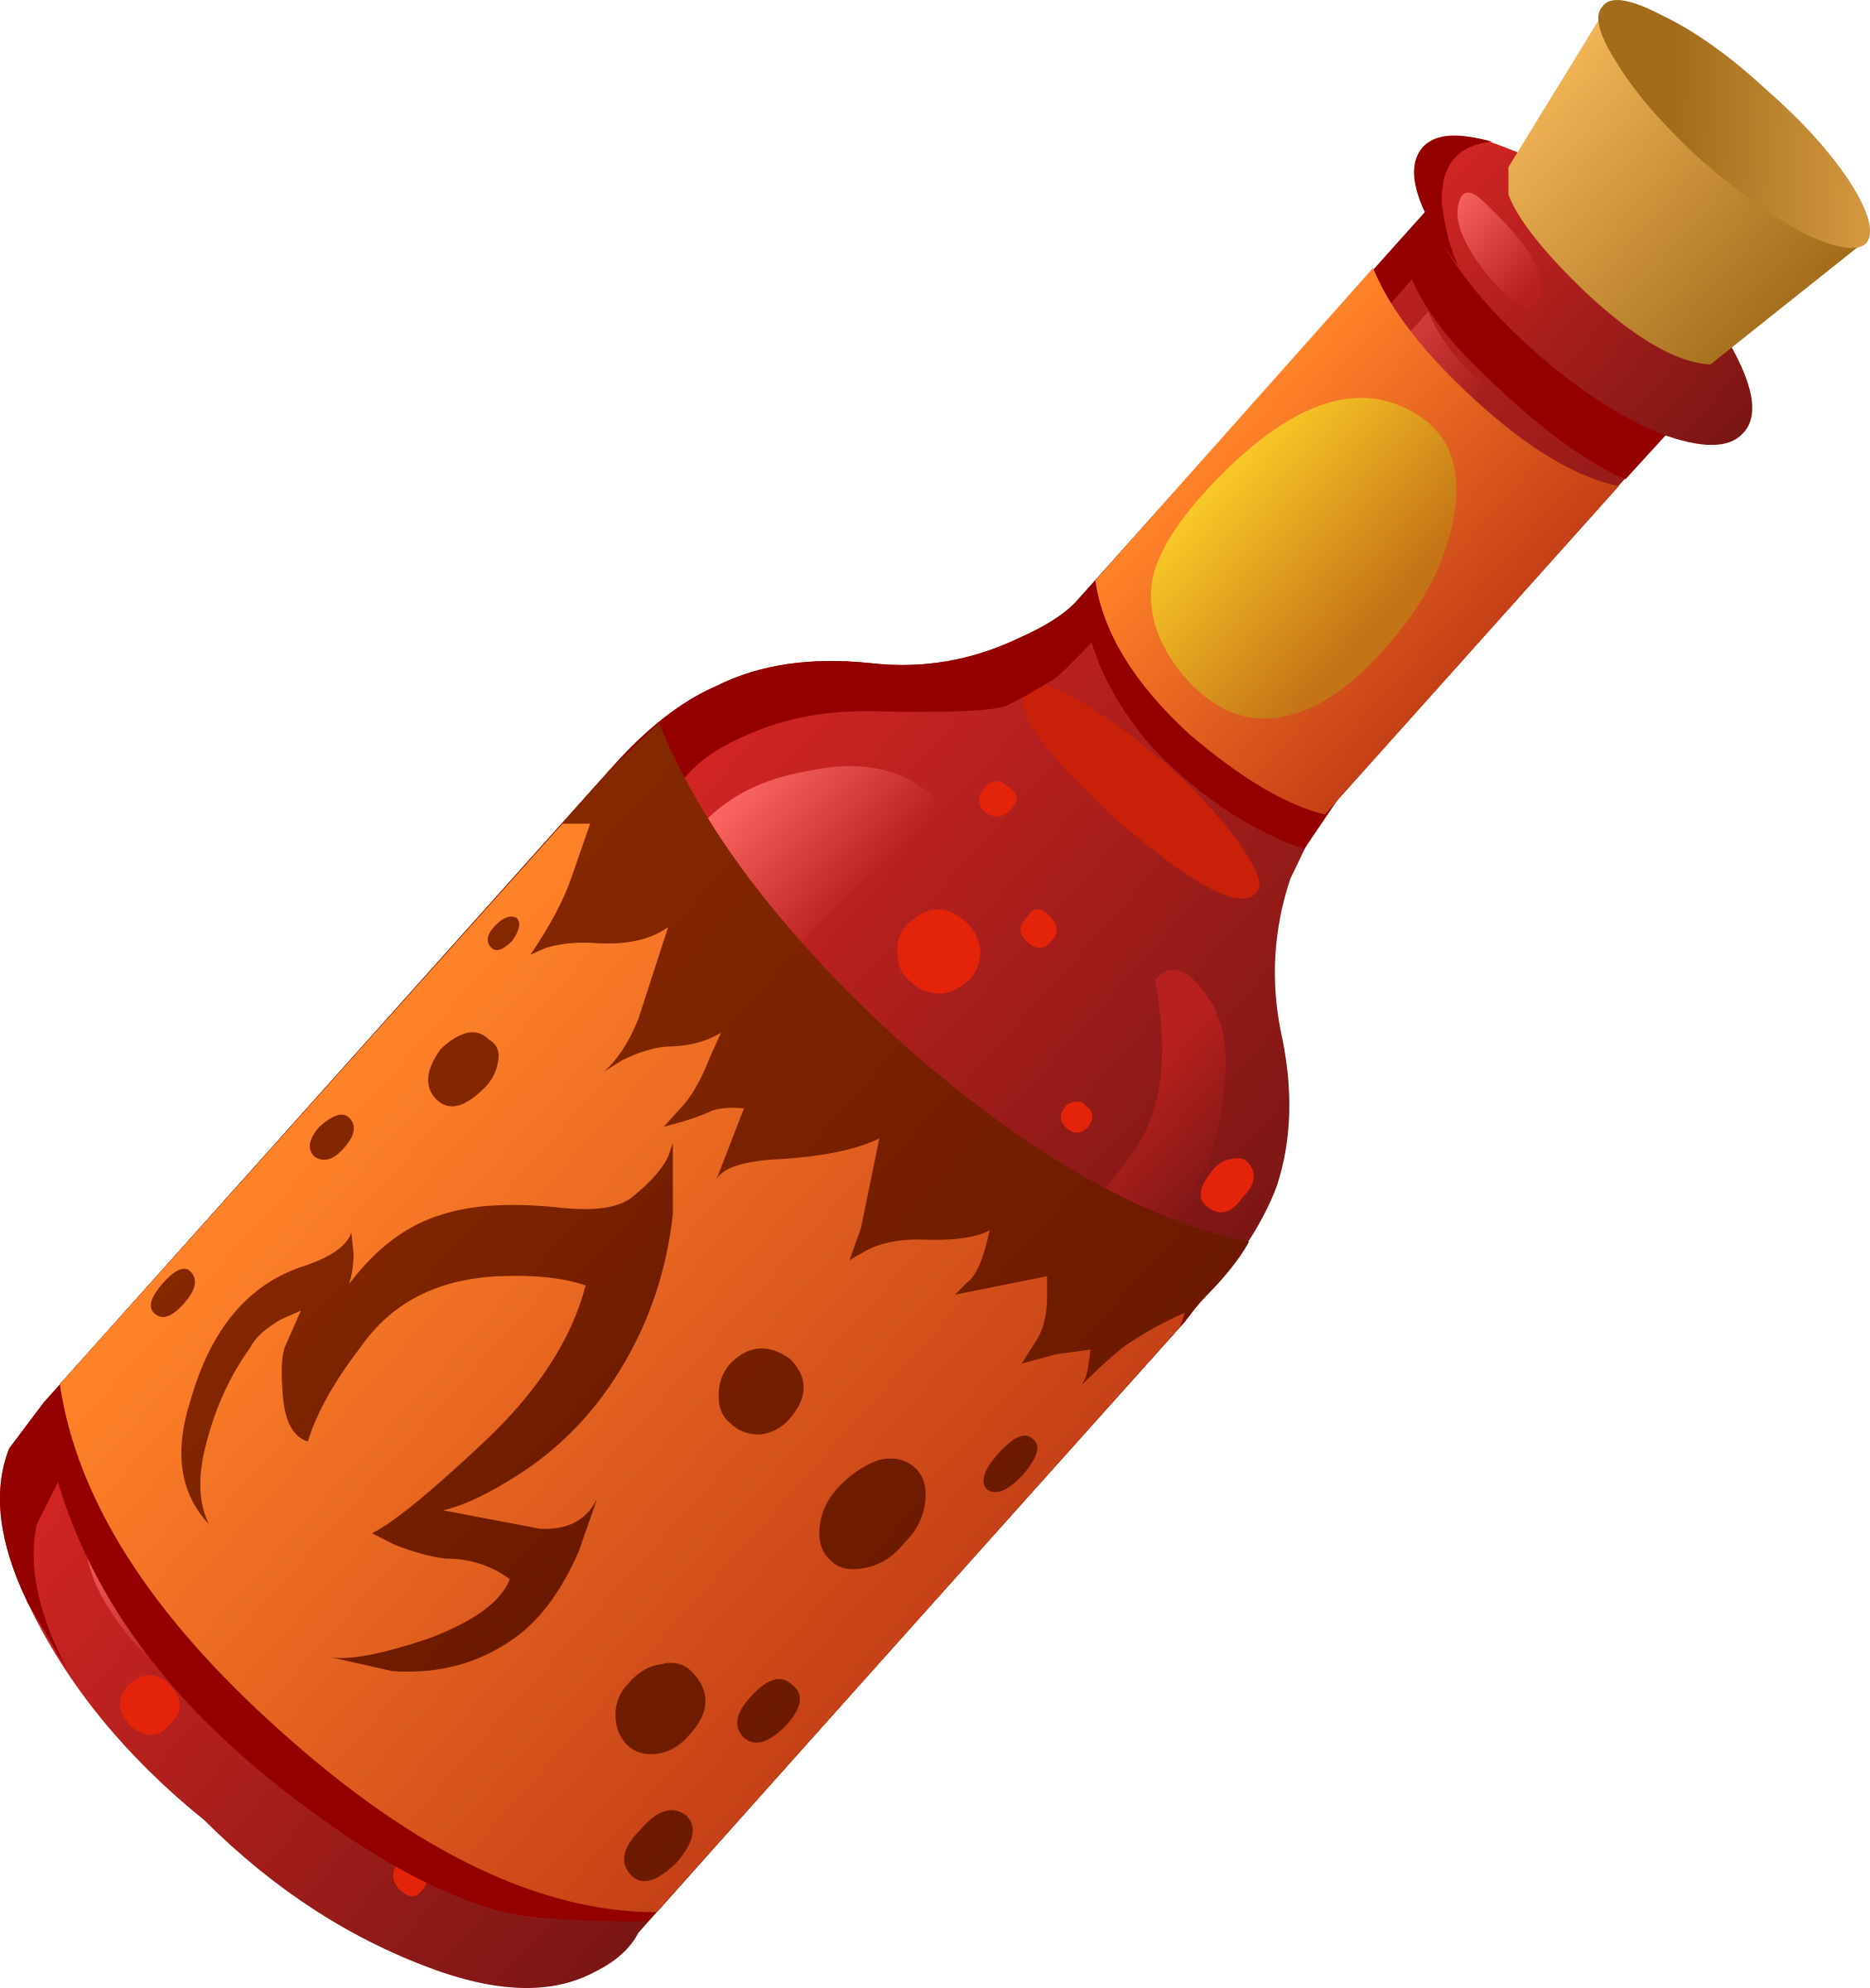 Food hot n fizzy. Soup clipart spilled